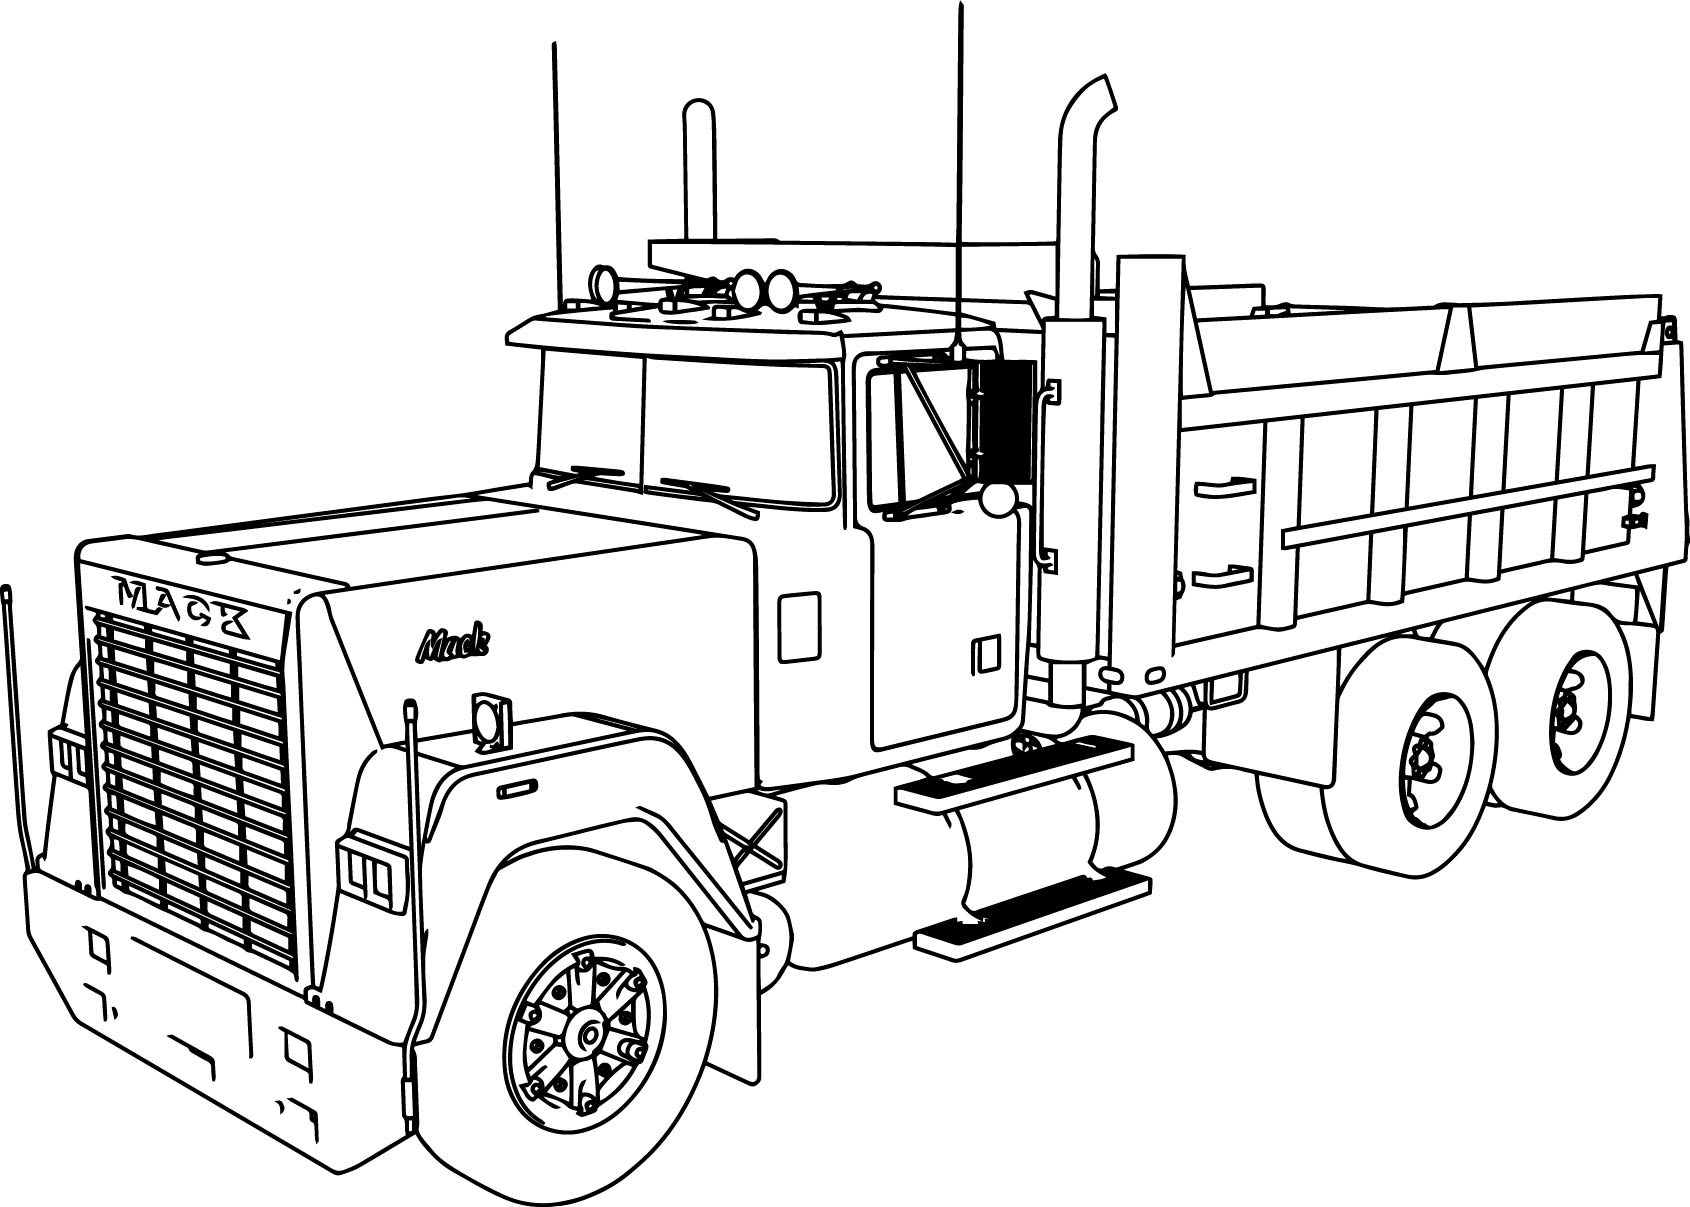 Fire Truck 1 furthermore Desenho De Trator Retroescavadeira E moreover 40 Free Printable Truck Coloring Pages Download in addition Cattle Truck Coloring Page together with Wooden Truck Toys Plans. on toy semi trucks